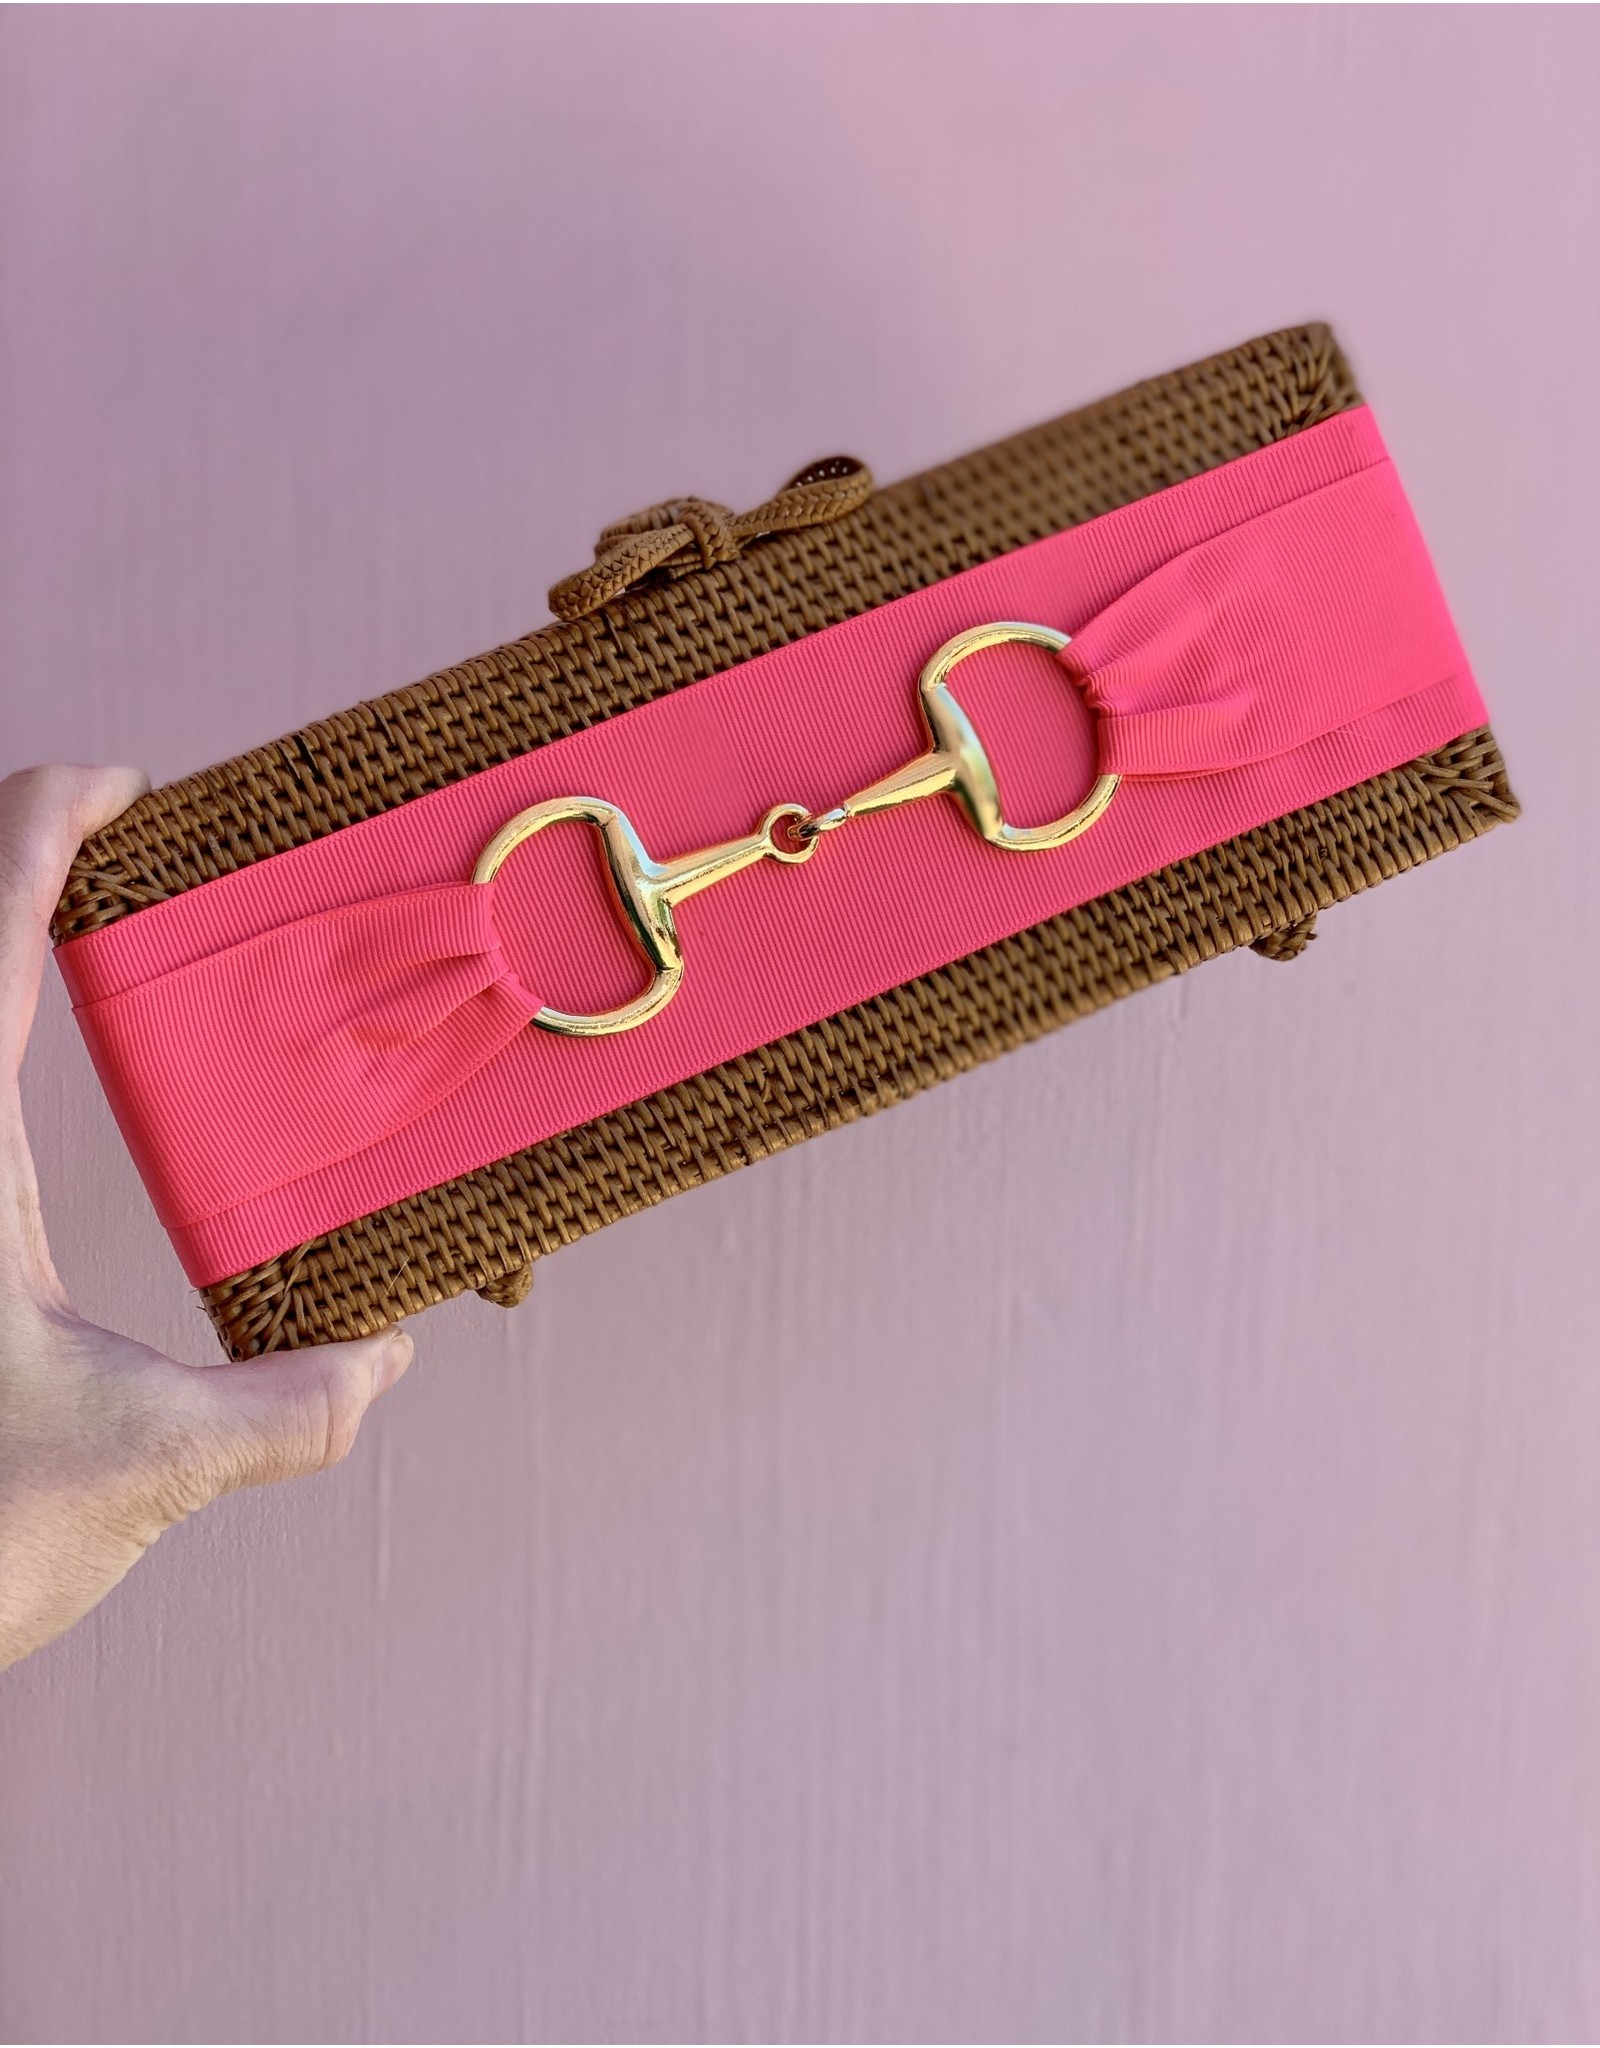 Lisi Lerch Colette Clutch Hot Pink with Snaffle by Lisi Lerch